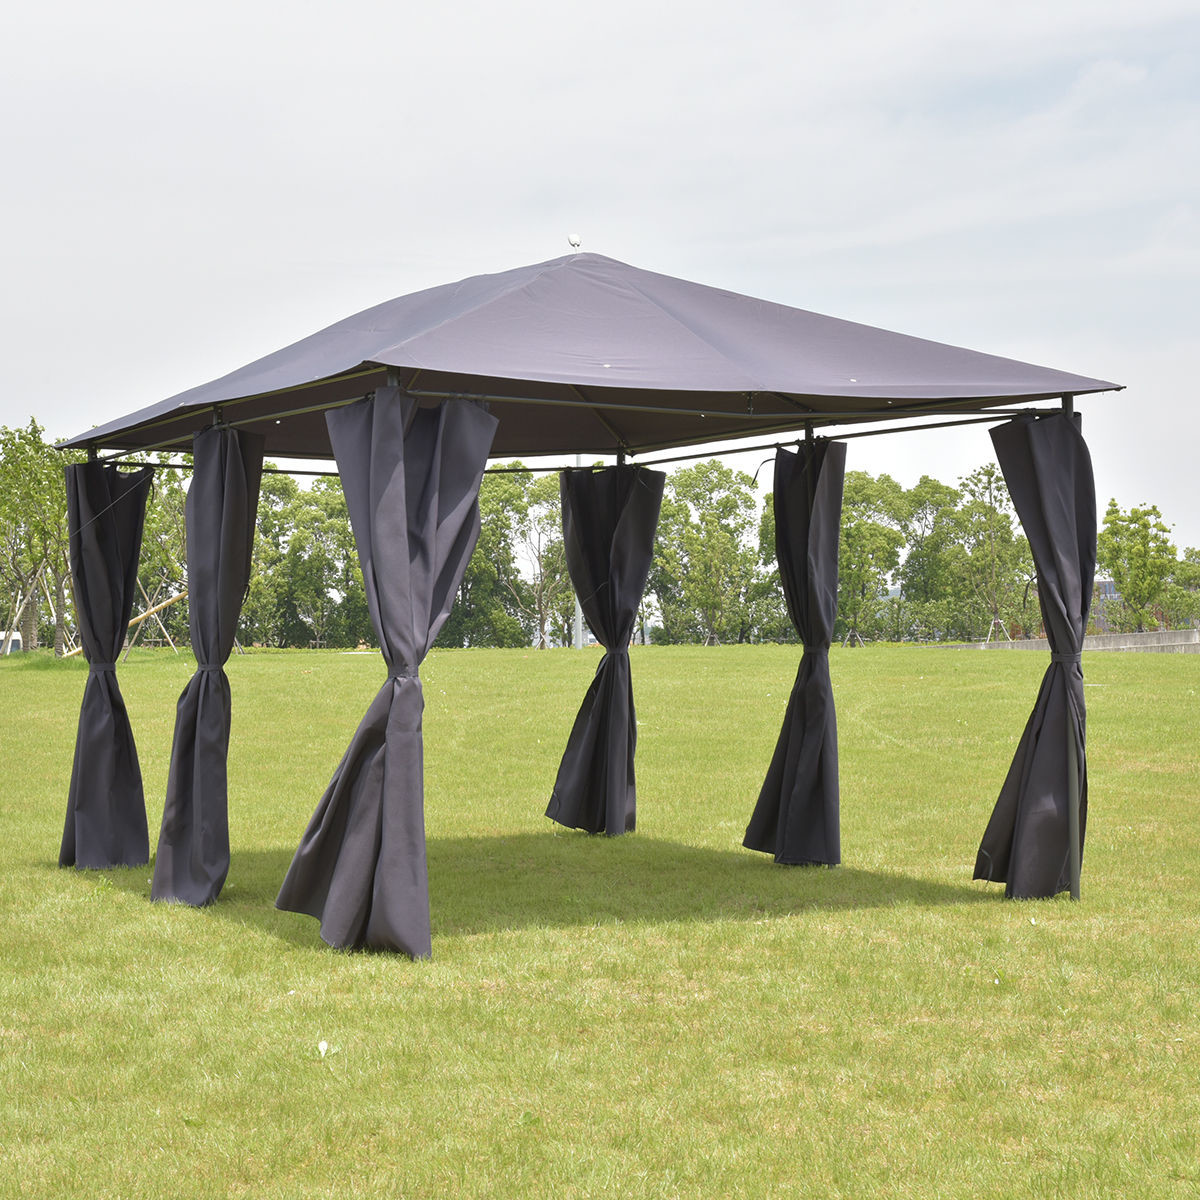 Outdoor 10'x13' Gazebo Canopy Tent Shelter Awning Steel Frame W Walls Gray by